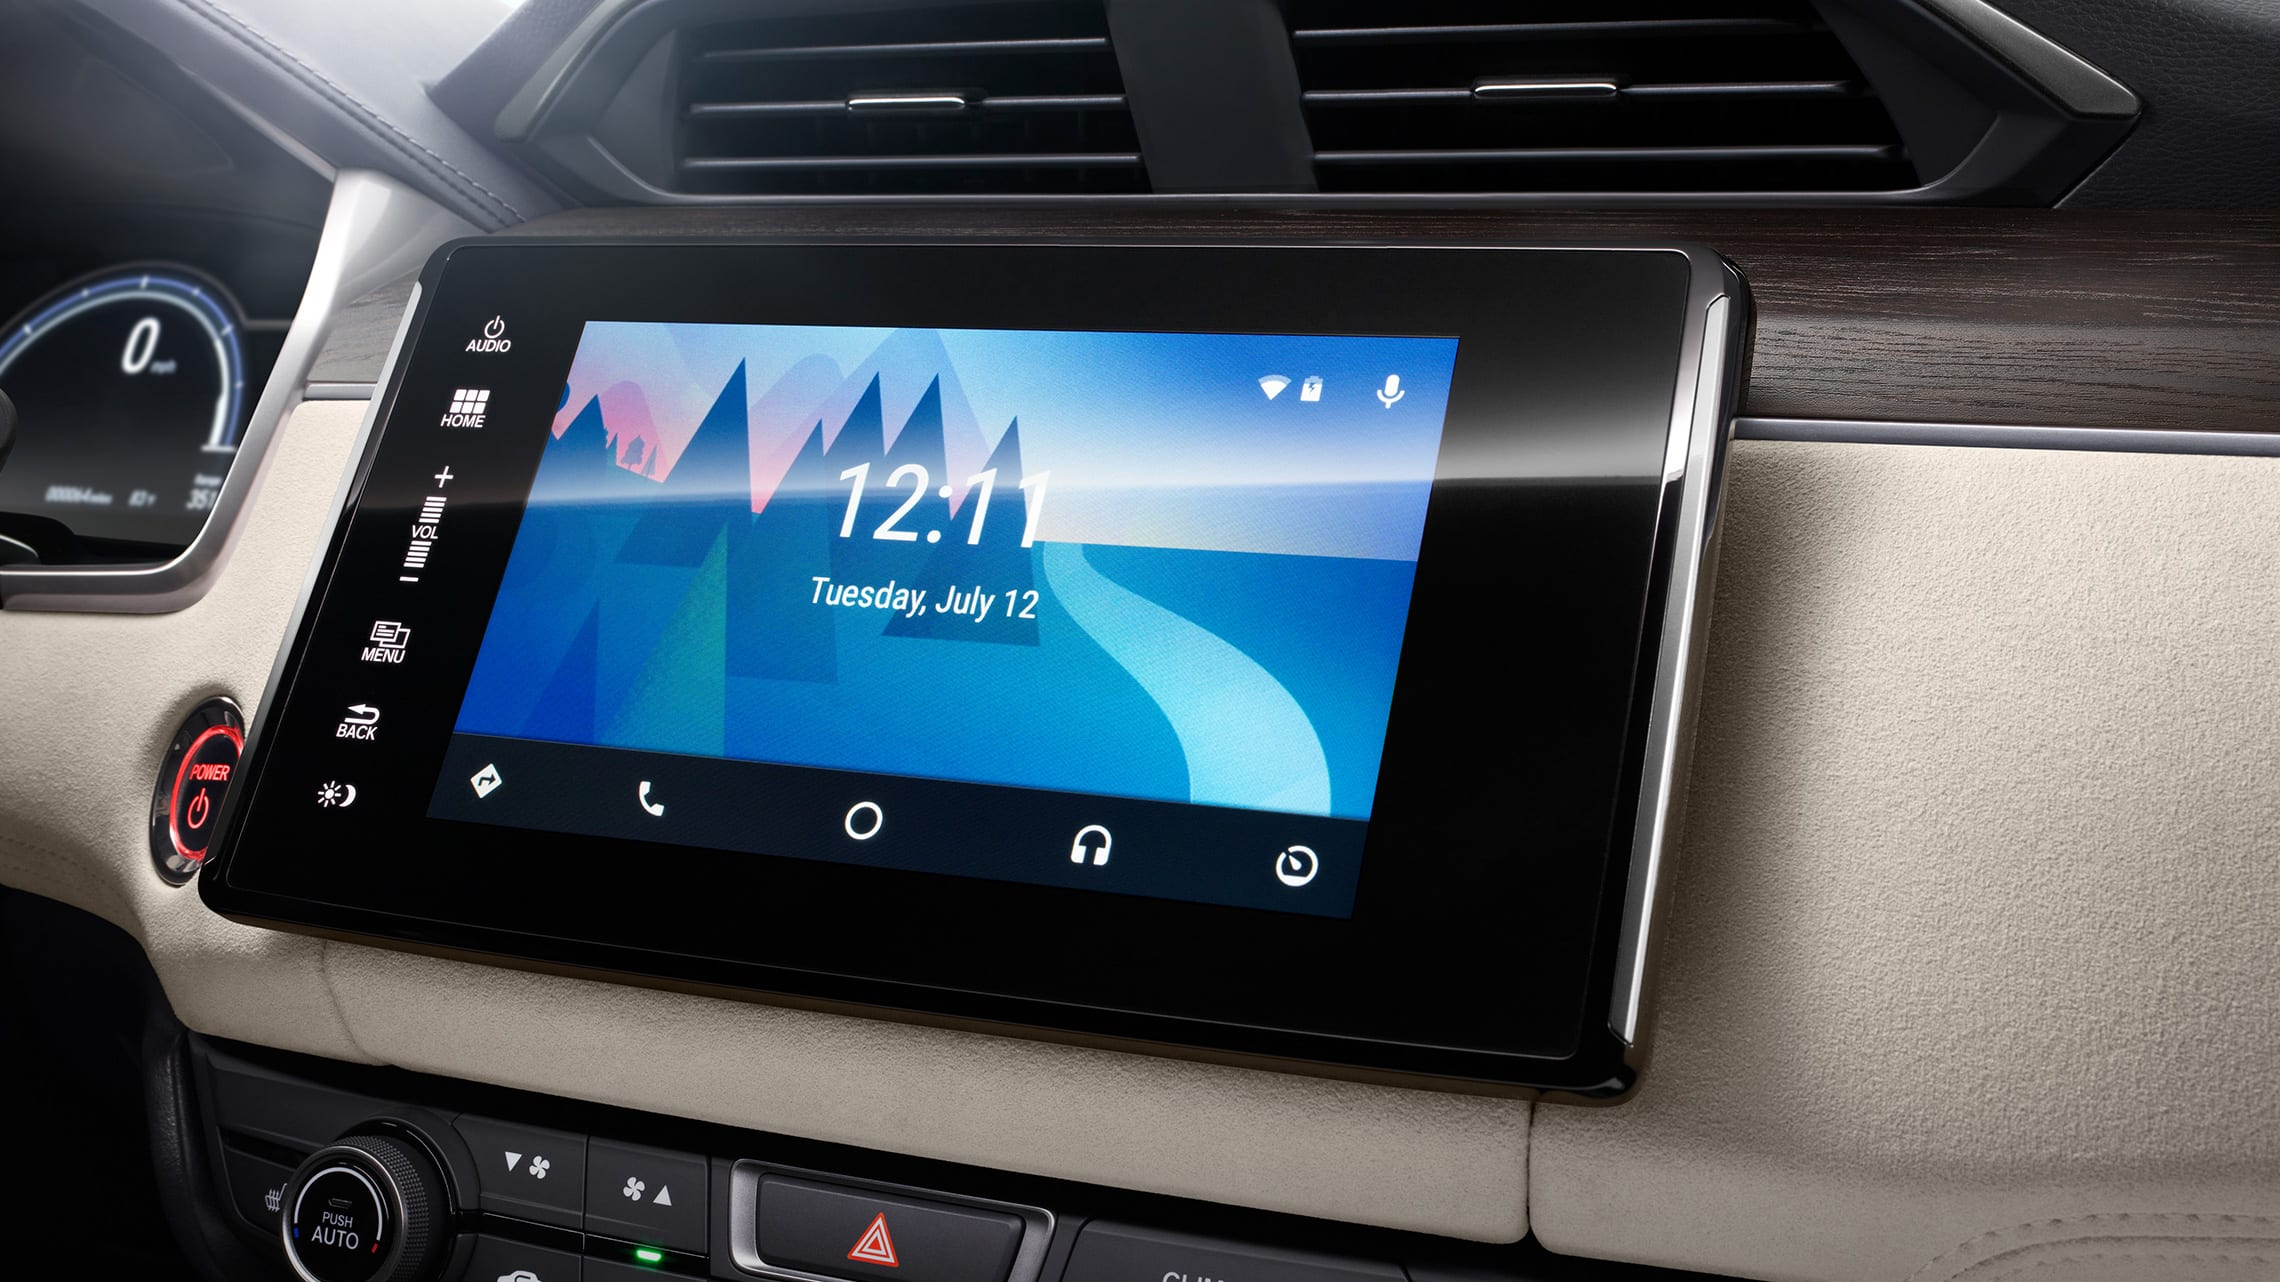 Android Auto™ integration on Display Audio touch-screen in the 2021 Honda Ridgeline.